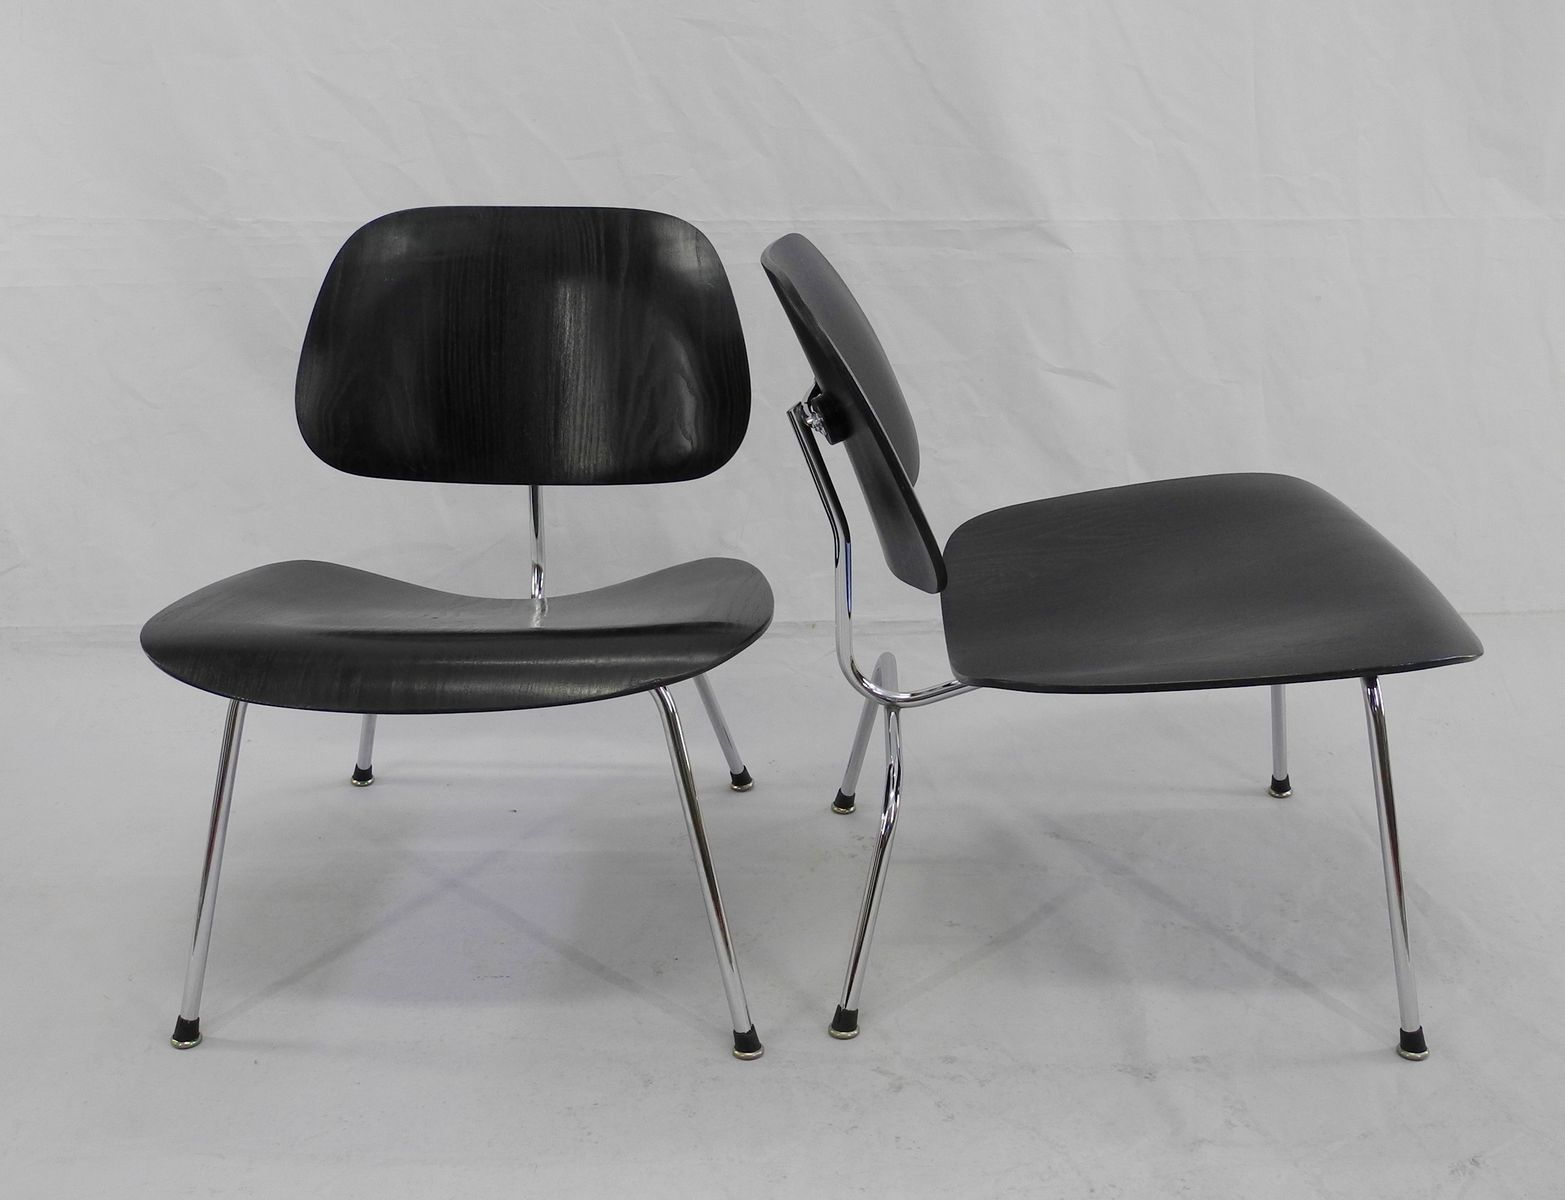 lcm chairs by charles ray eames for herman miller set of 2 bei pamono kaufen. Black Bedroom Furniture Sets. Home Design Ideas